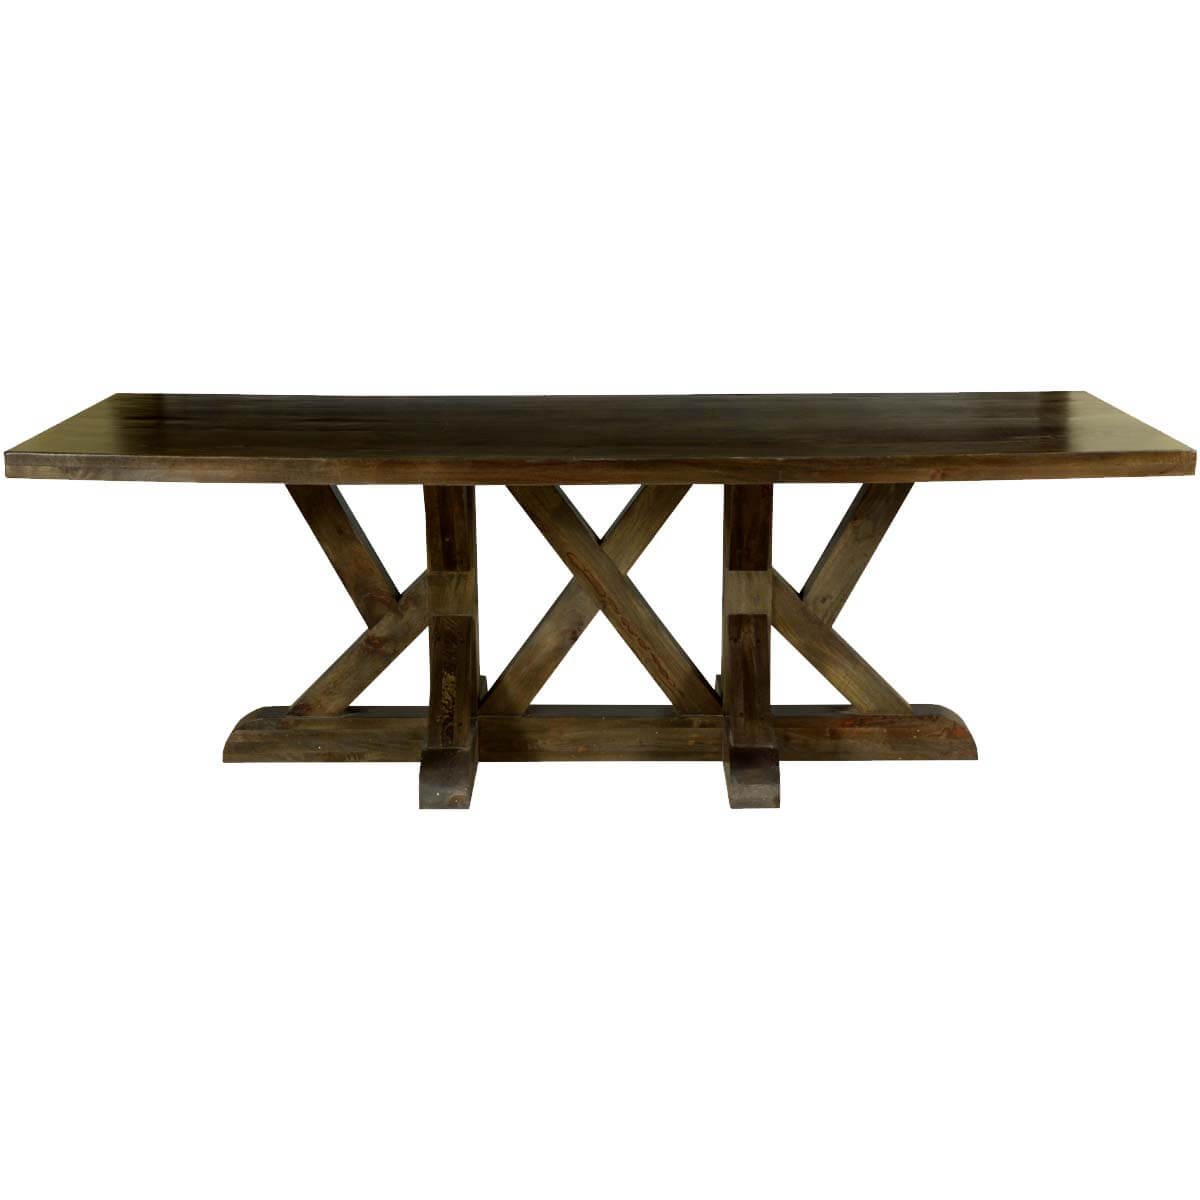 "Dining Unfinished Wood Trestle Bench International: Five X Trestle Solid Mango Wood 94"" Dining Table"